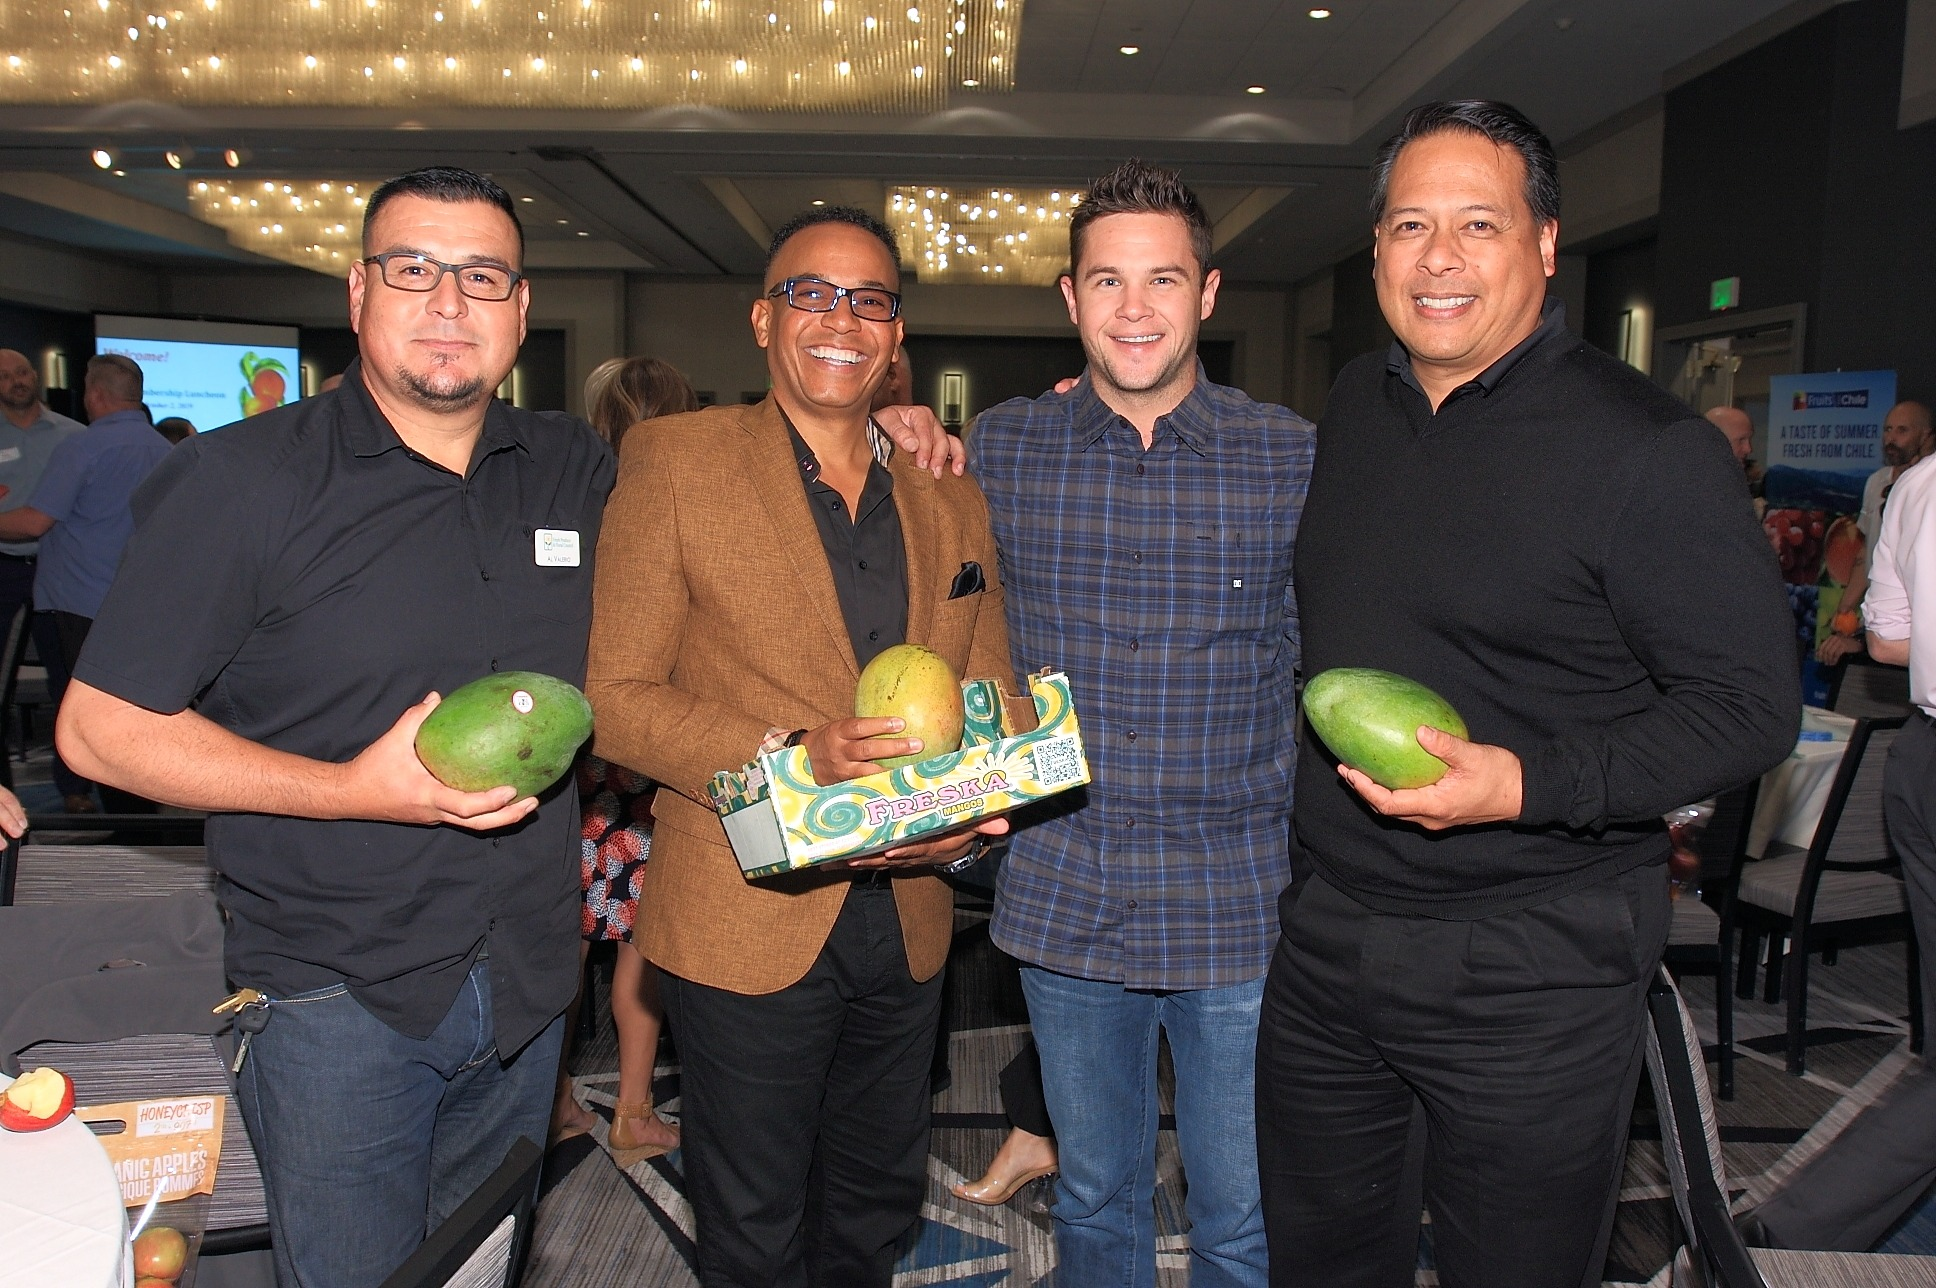 Al Valerio of Freska Produce with Robert Thompson of FreshSource, LLC.; Hayes Hanlon of Freska Produce and Marvin Quebec of Quebec Distributing Co.